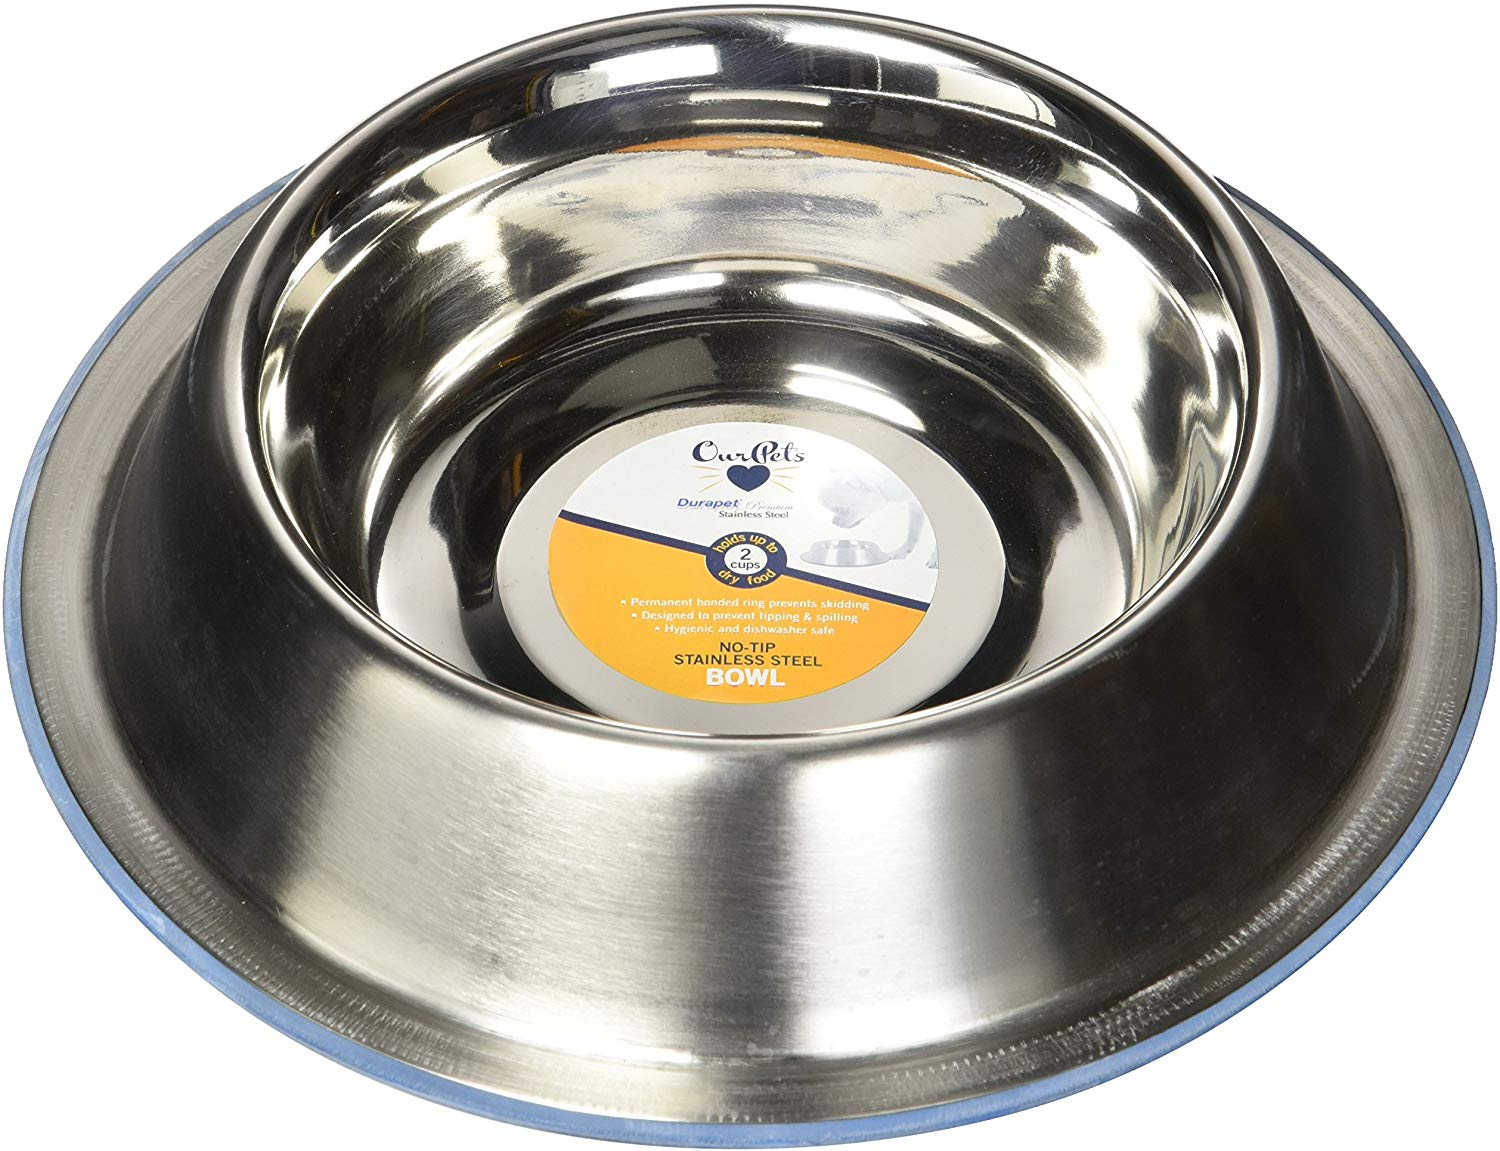 OurPets No-Tip Dog Bowl, Medium, 3-cups